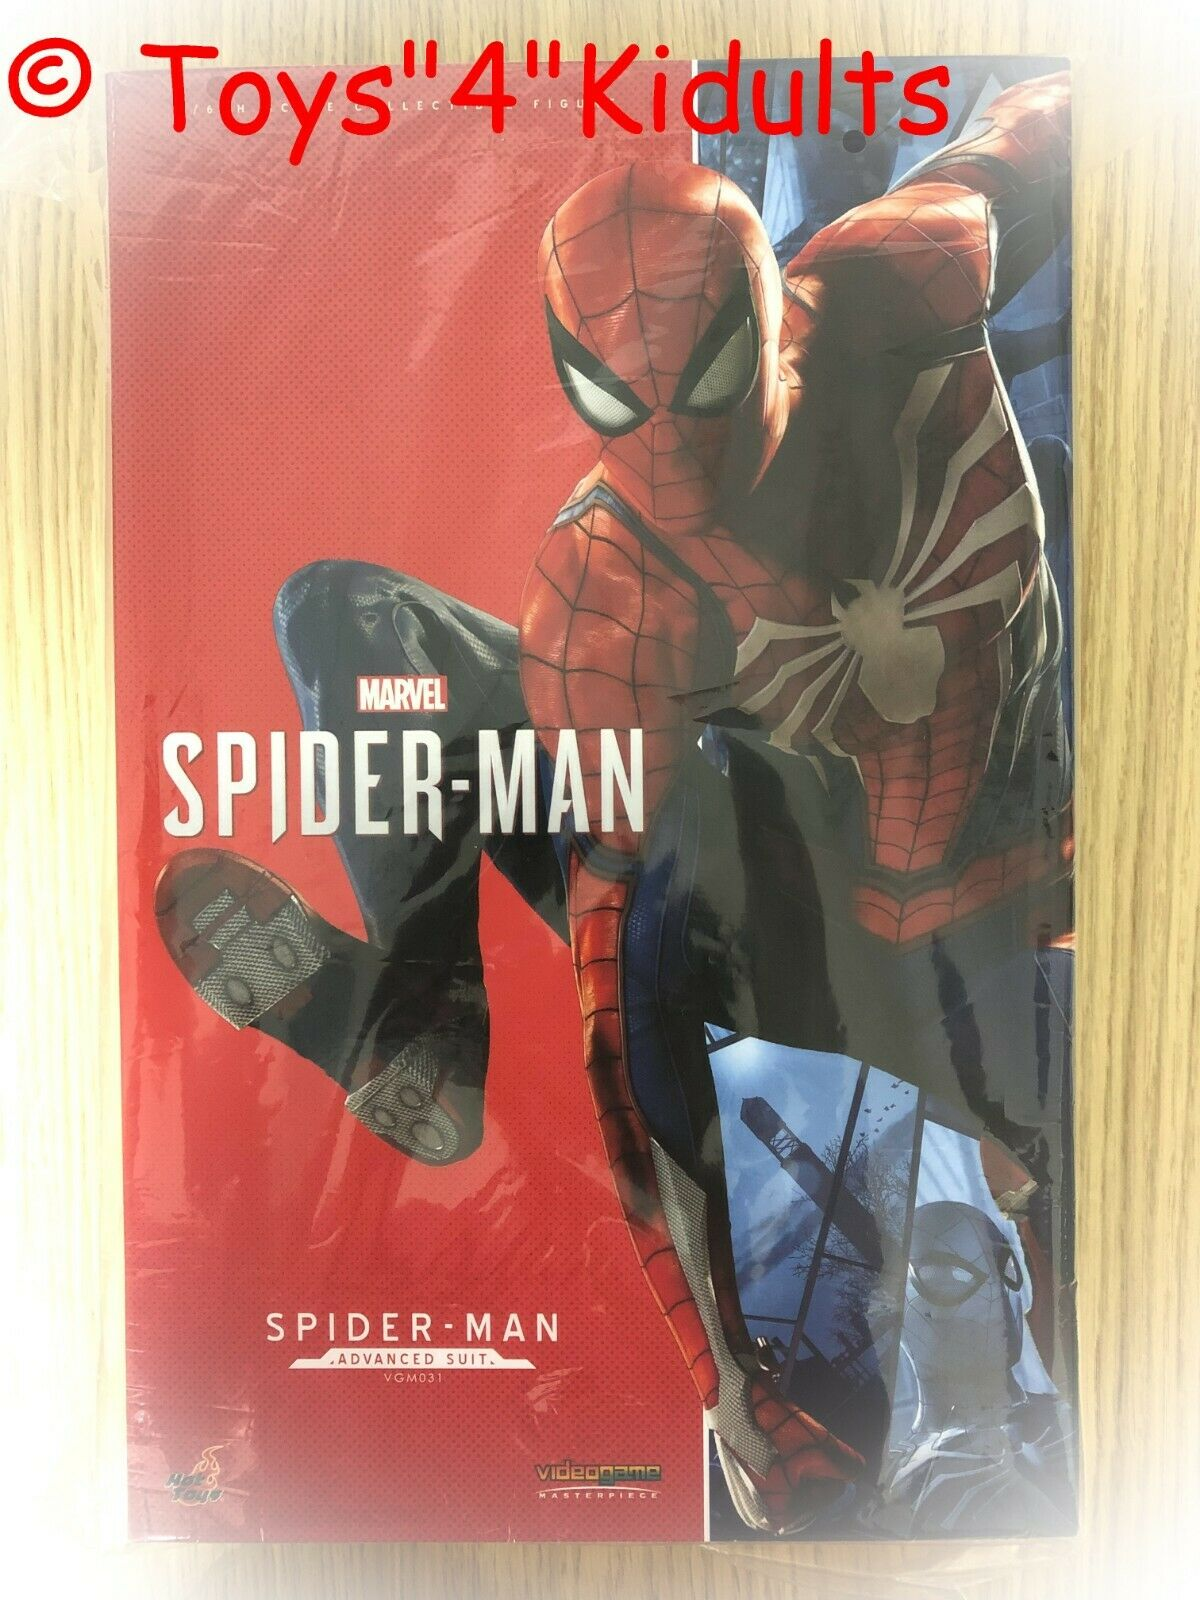 Hot Toys Toys Toys VGM 31 Marvel's Spider-Man (Advance Suit